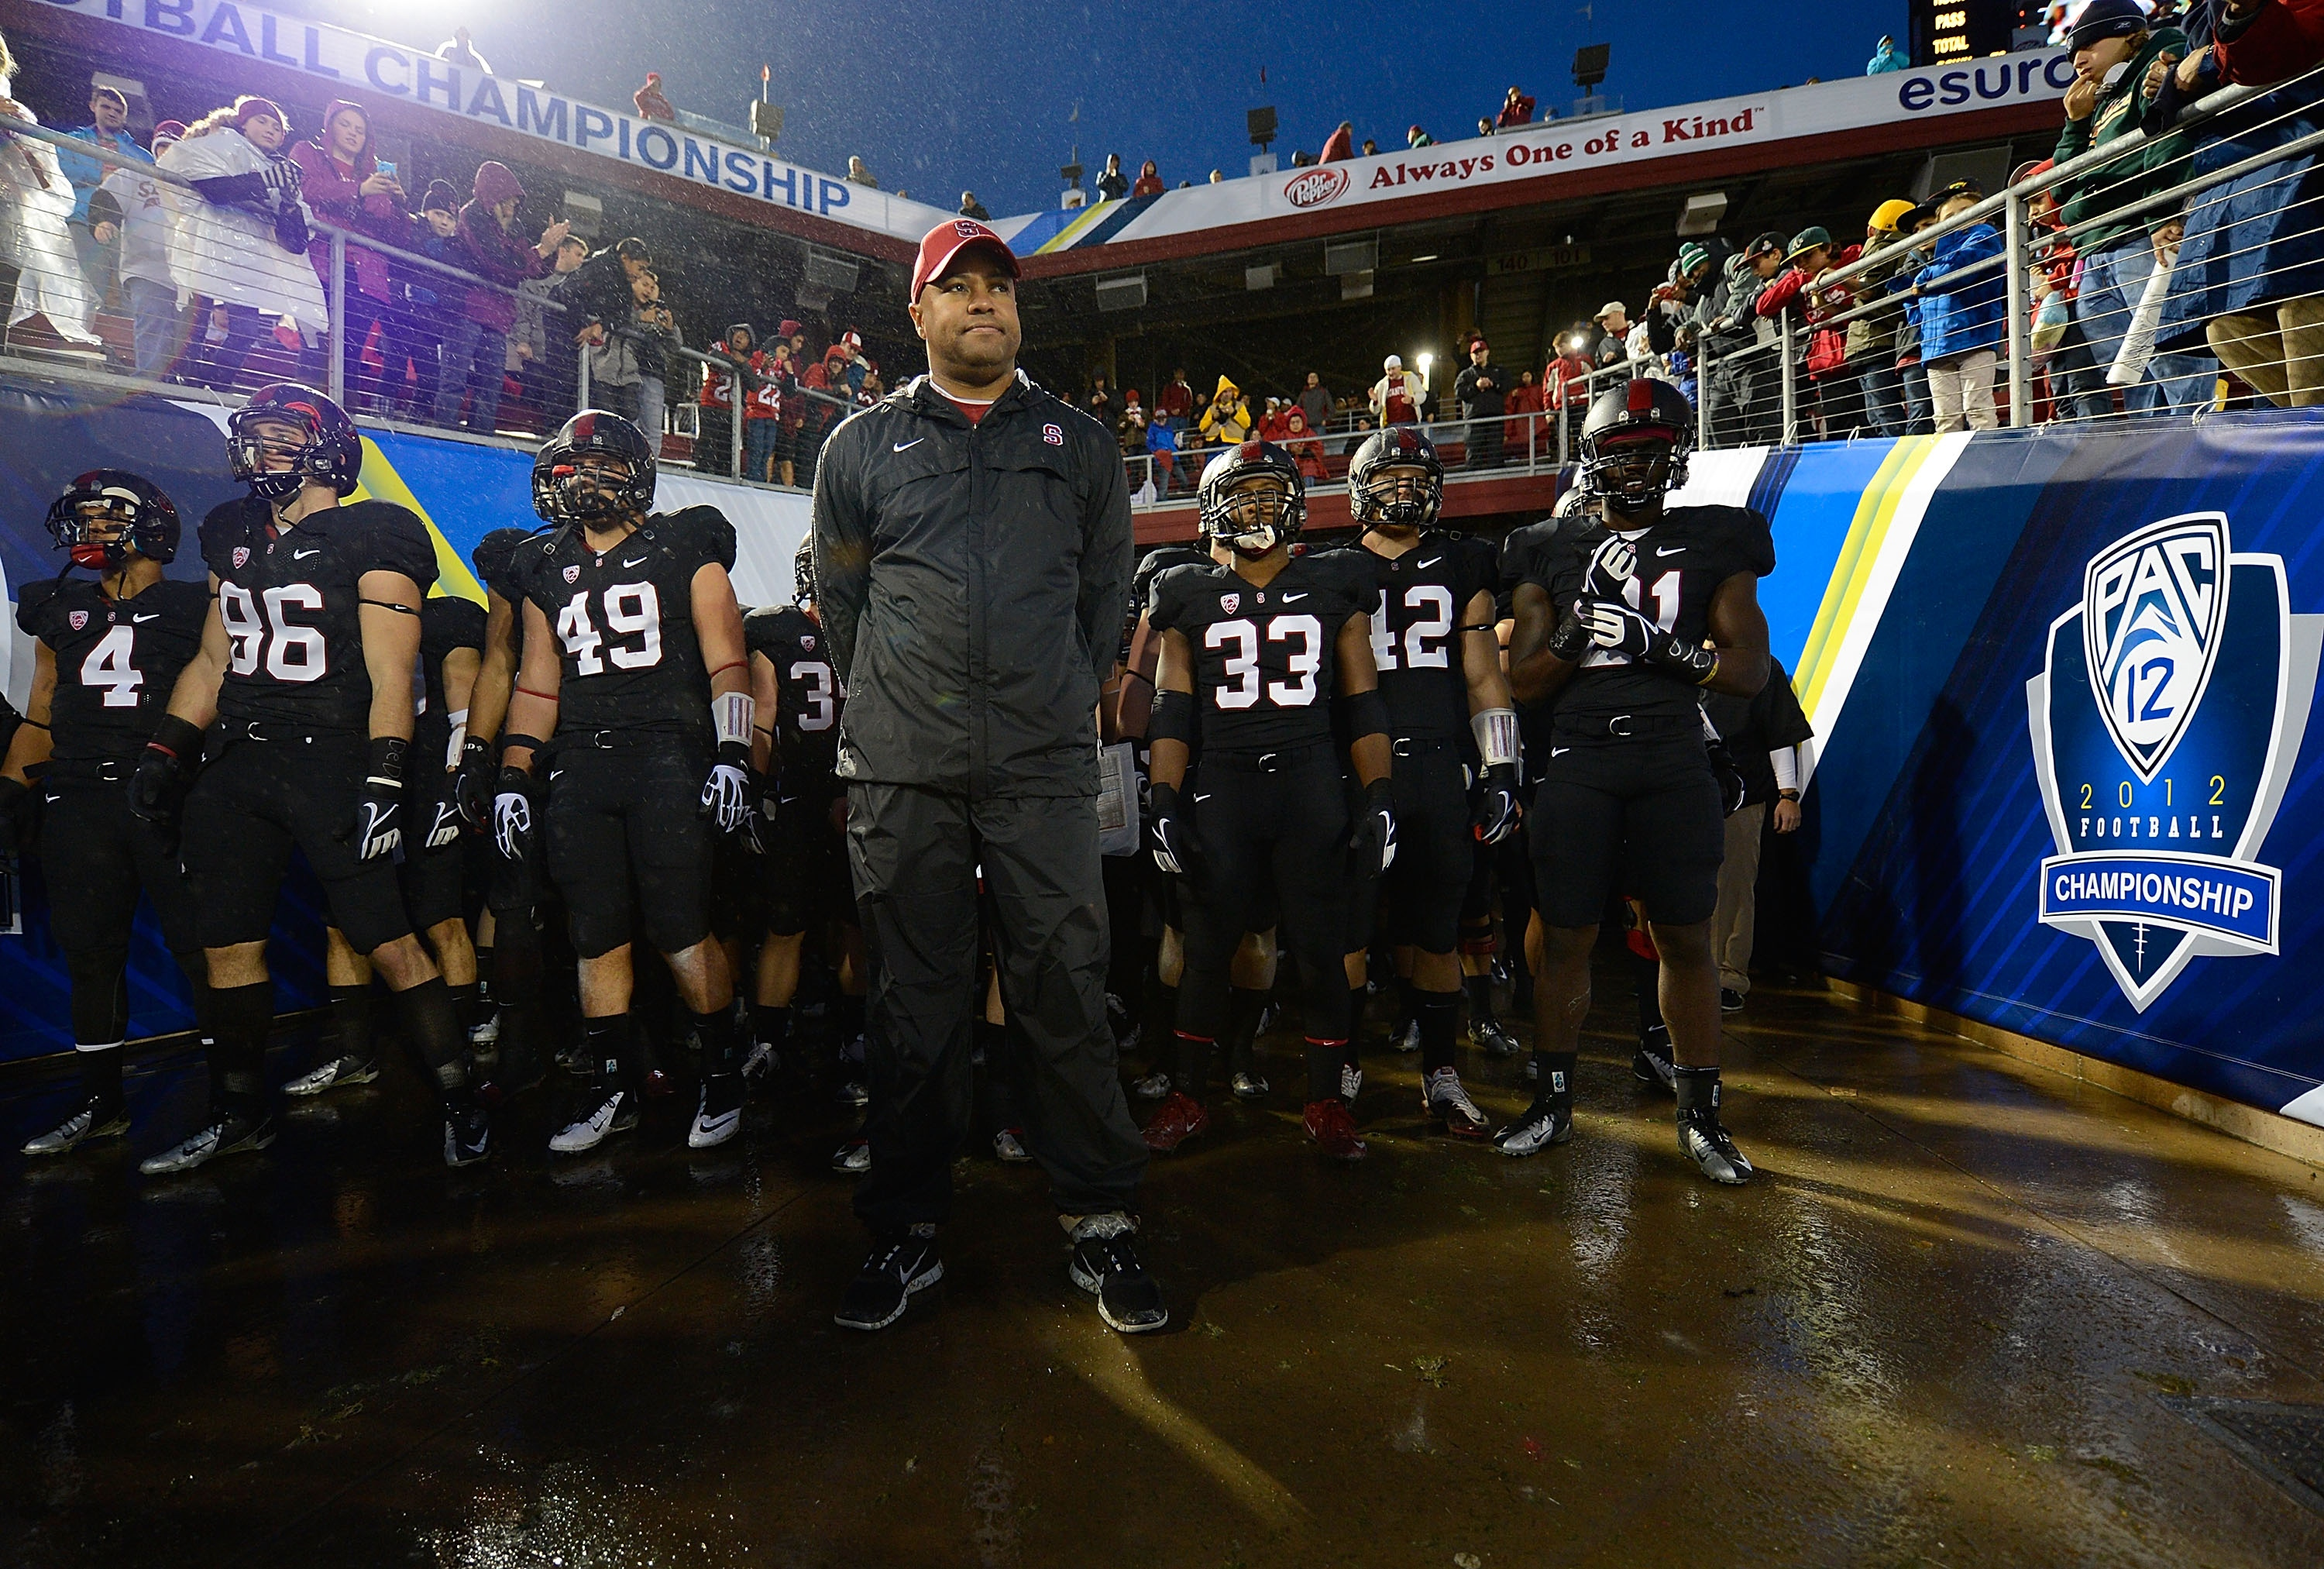 David Shaw stands in front of his team before they take the field to play UCLA. (Getty)